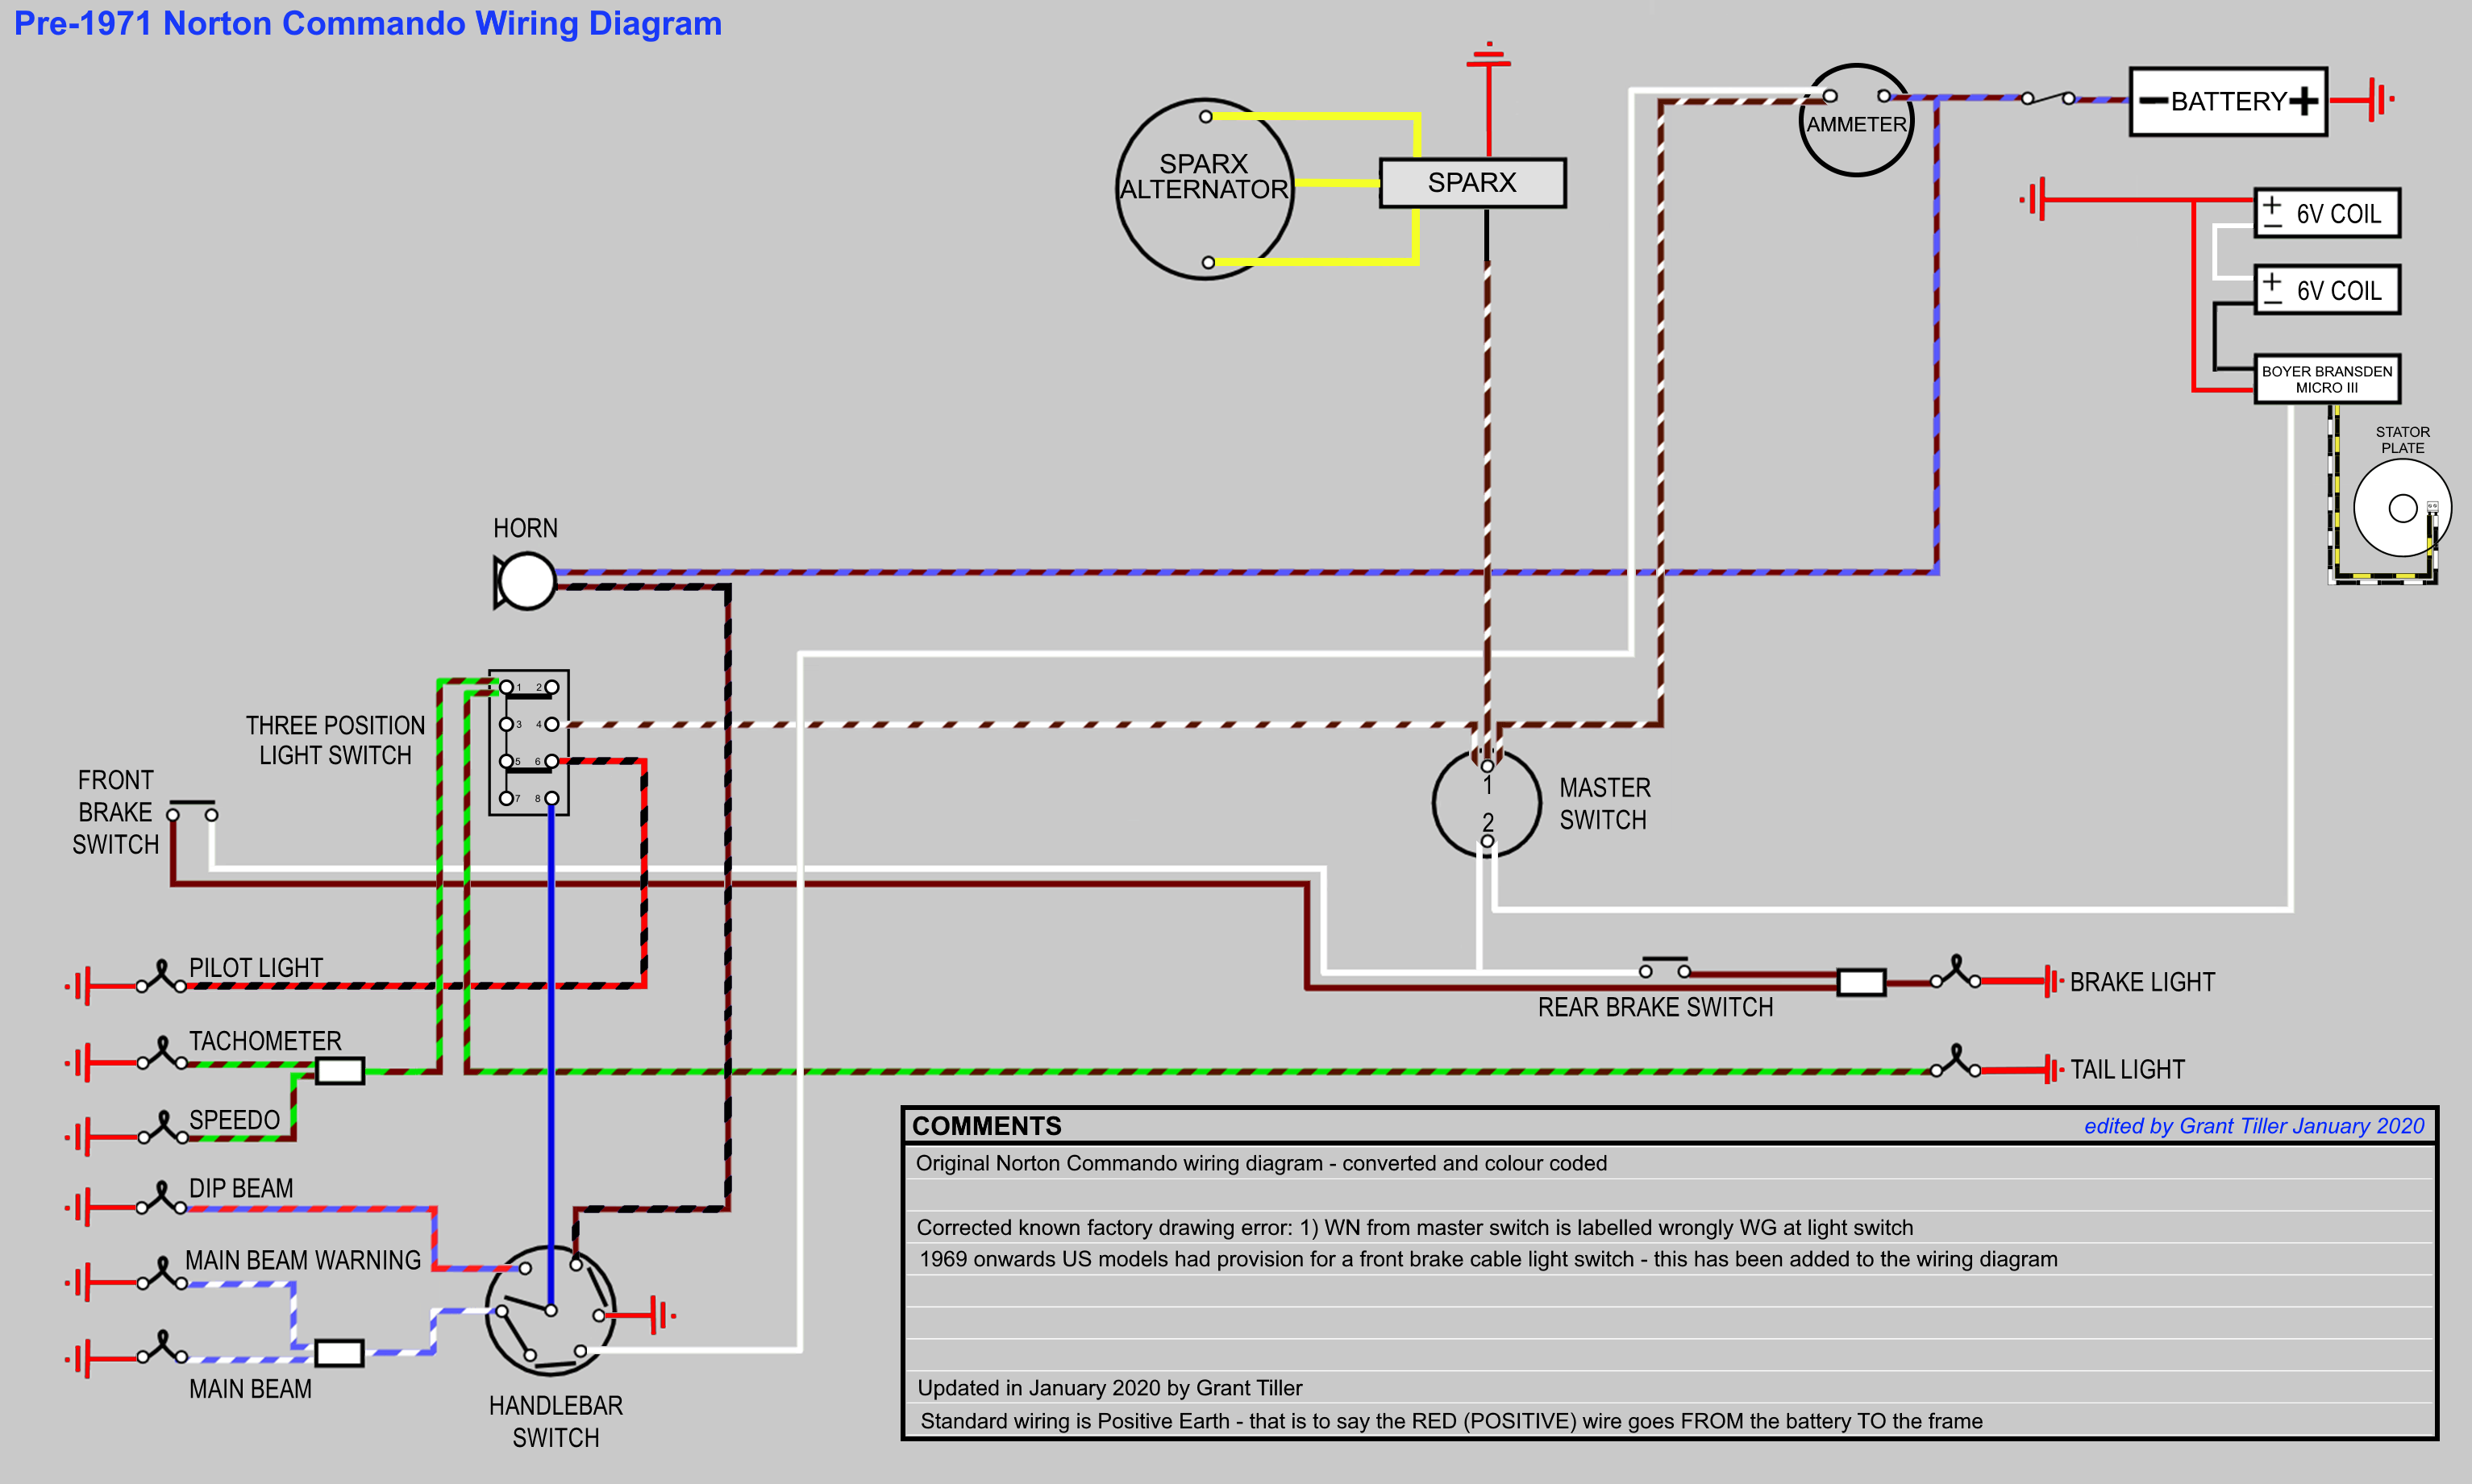 [TVPR_3874]  Commando Wiring Diagram + Boyer + Sparx 3 phase | Triumph Wiring Diagram With Boyer |  | Grant Tiller